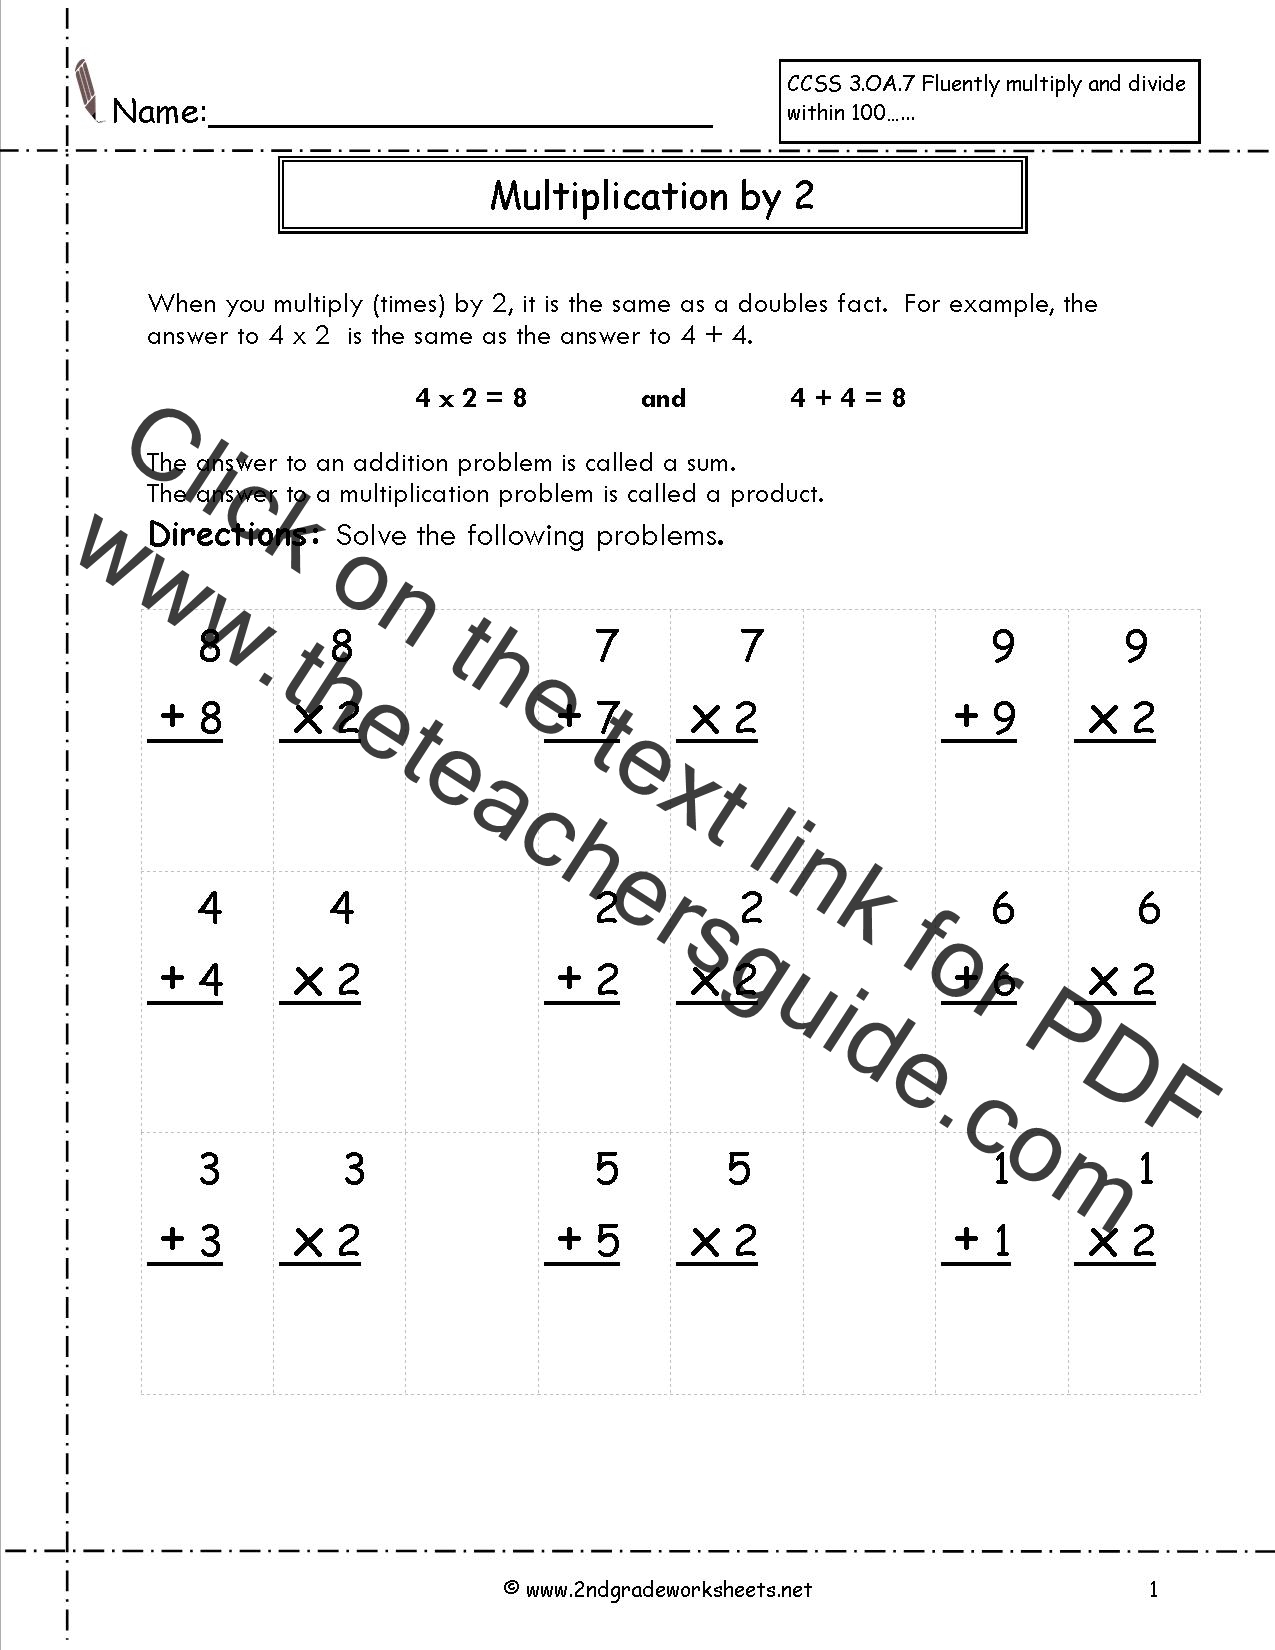 Multiplication Worksheets and Printouts – 100 Multiplication Facts Worksheets